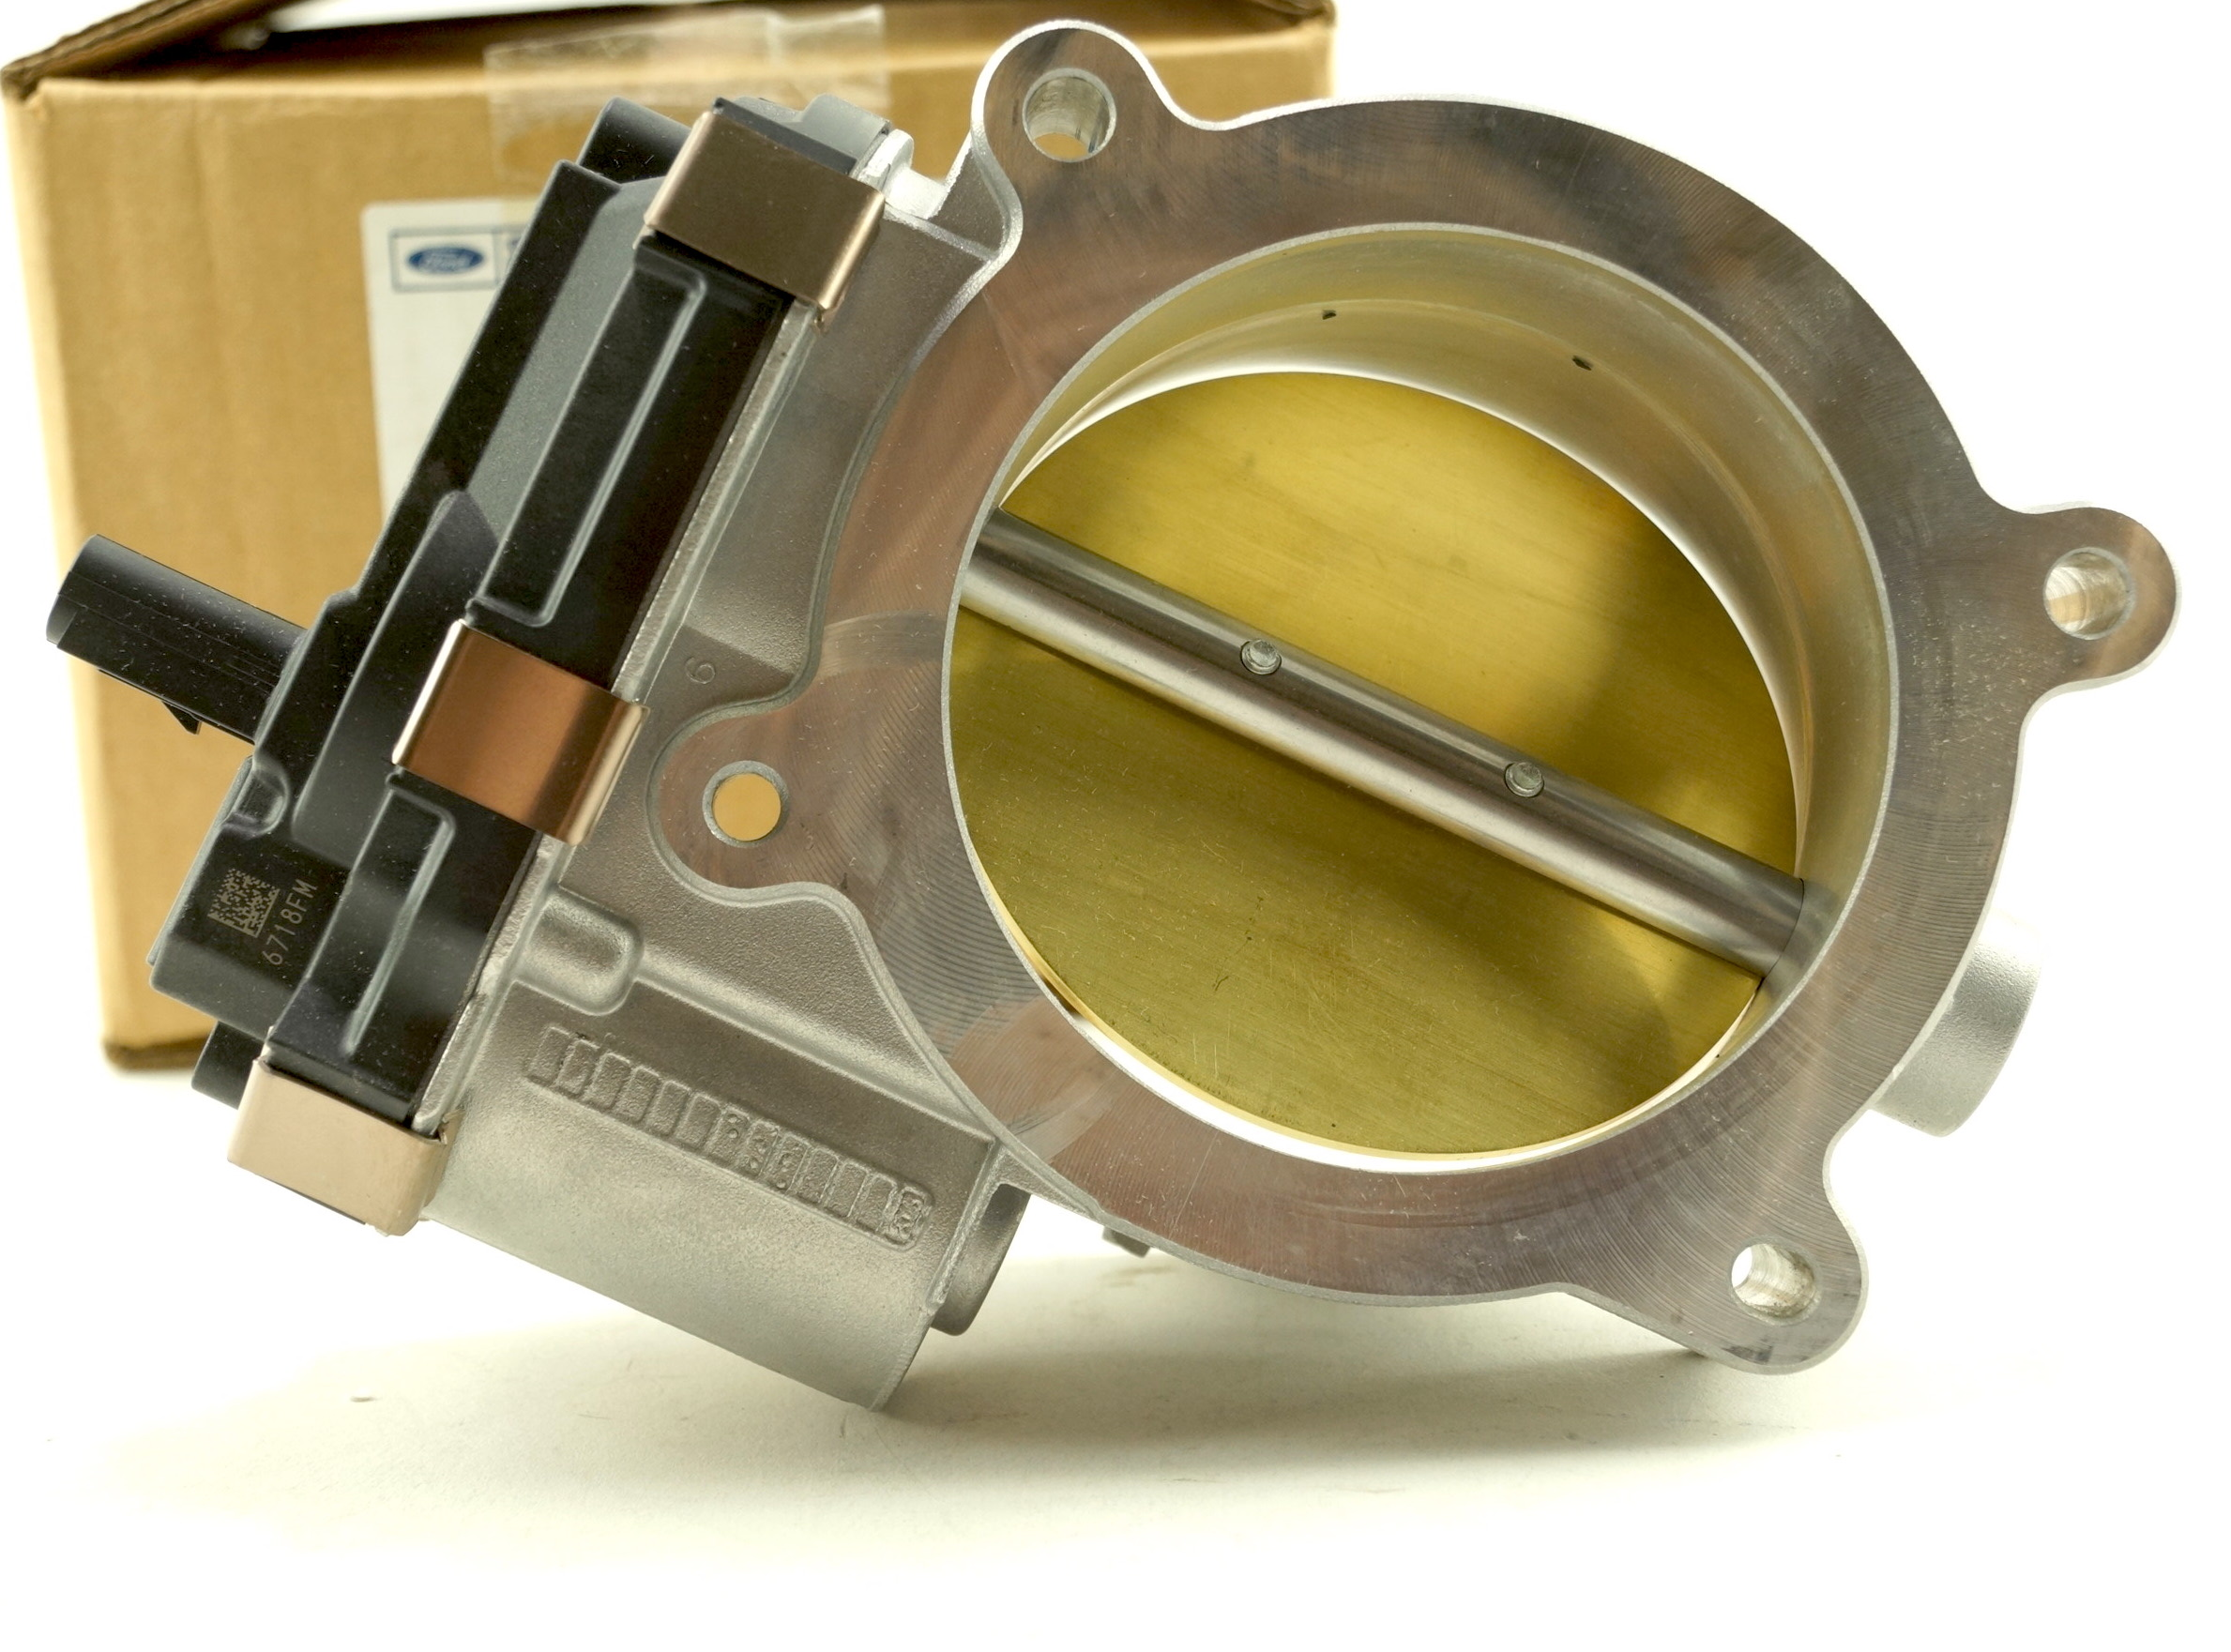 Genuine OEM GR3Z9E926A Ford 15-17 Mustang Throttle Body New Fast Free Shipping - image 3